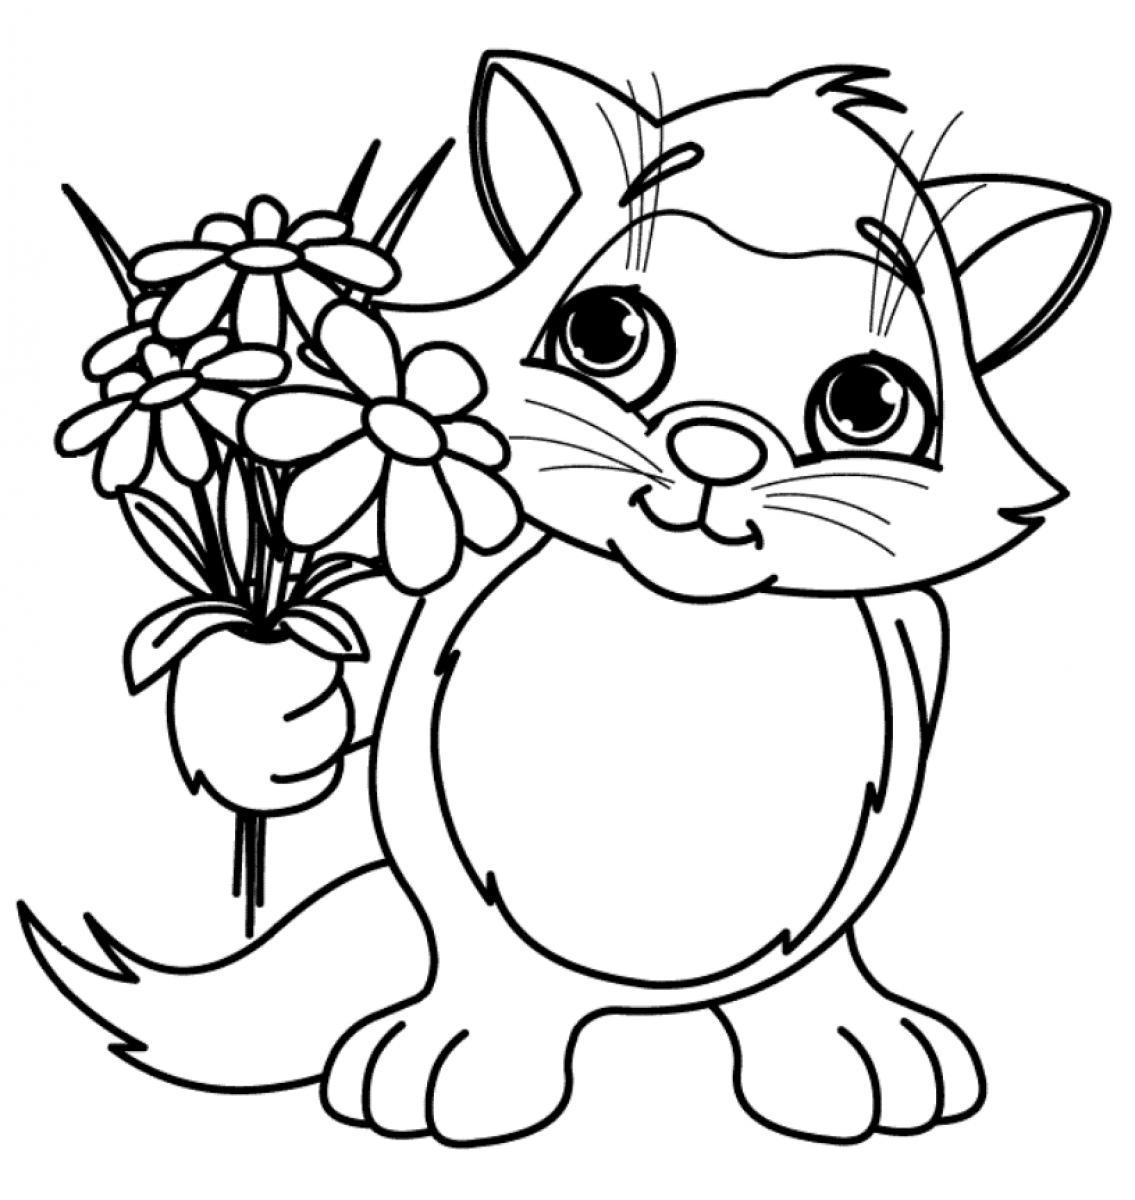 coloring flower flower coloring pages coloring flower 1 2